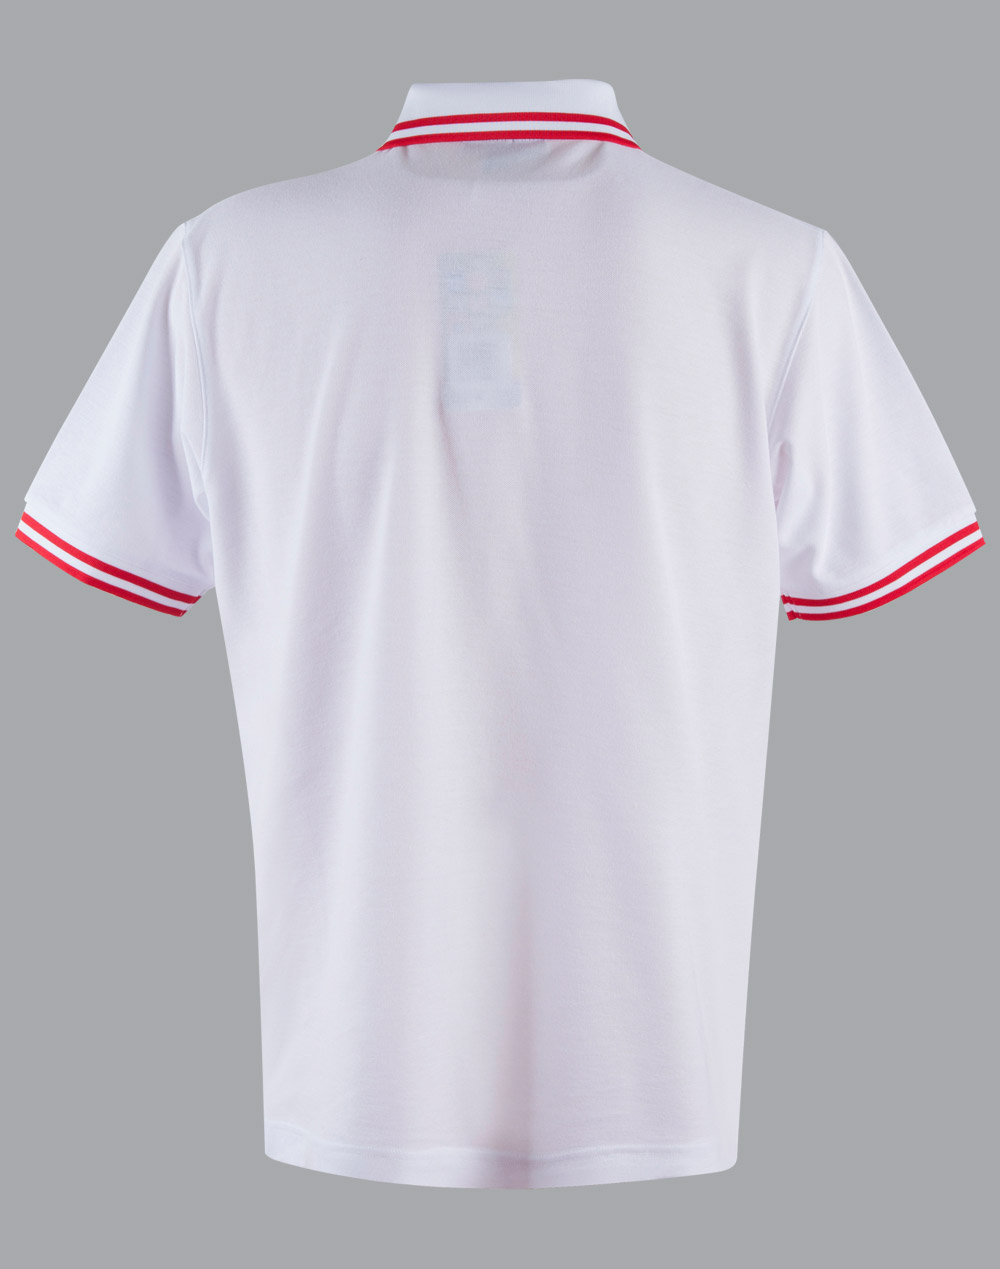 https://s3-ap-southeast-1.amazonaws.com/ws-imgs/POLOSHIRTS/PS65_WhiteRed_Back.jpg